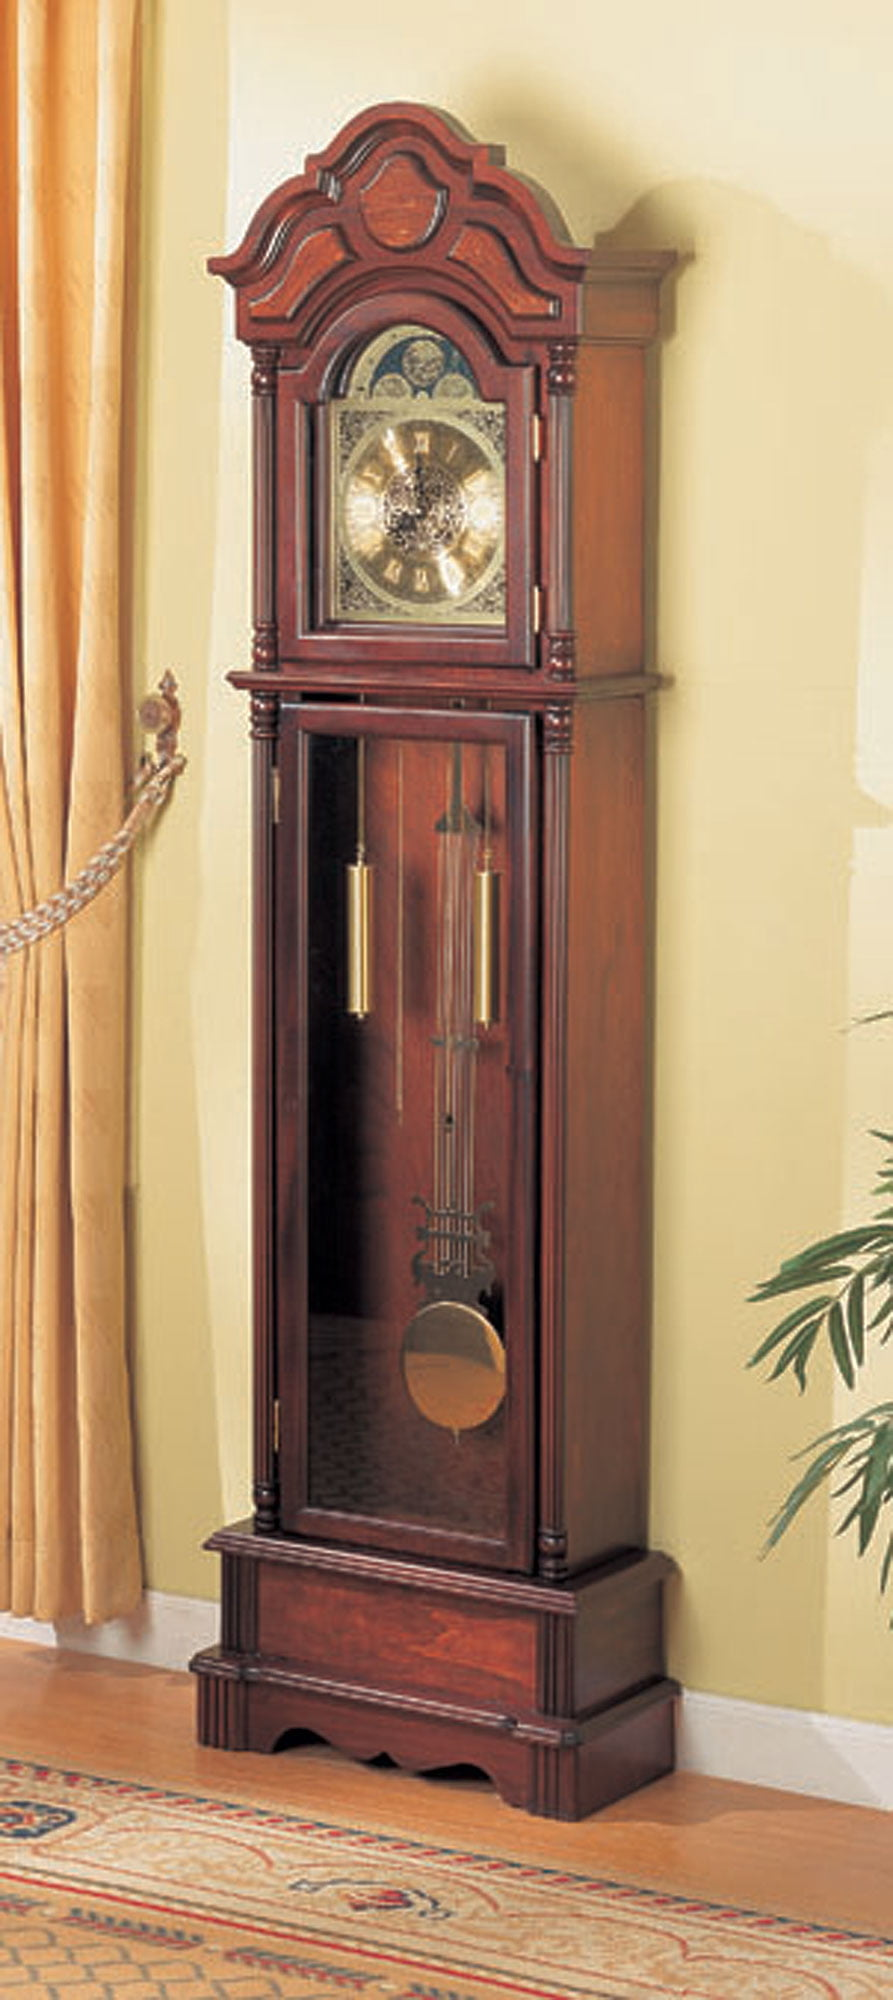 1PerfectChoice Traditional Grandfather Clock Floor Westminster Pendulum Chimes Brown Red Wood by